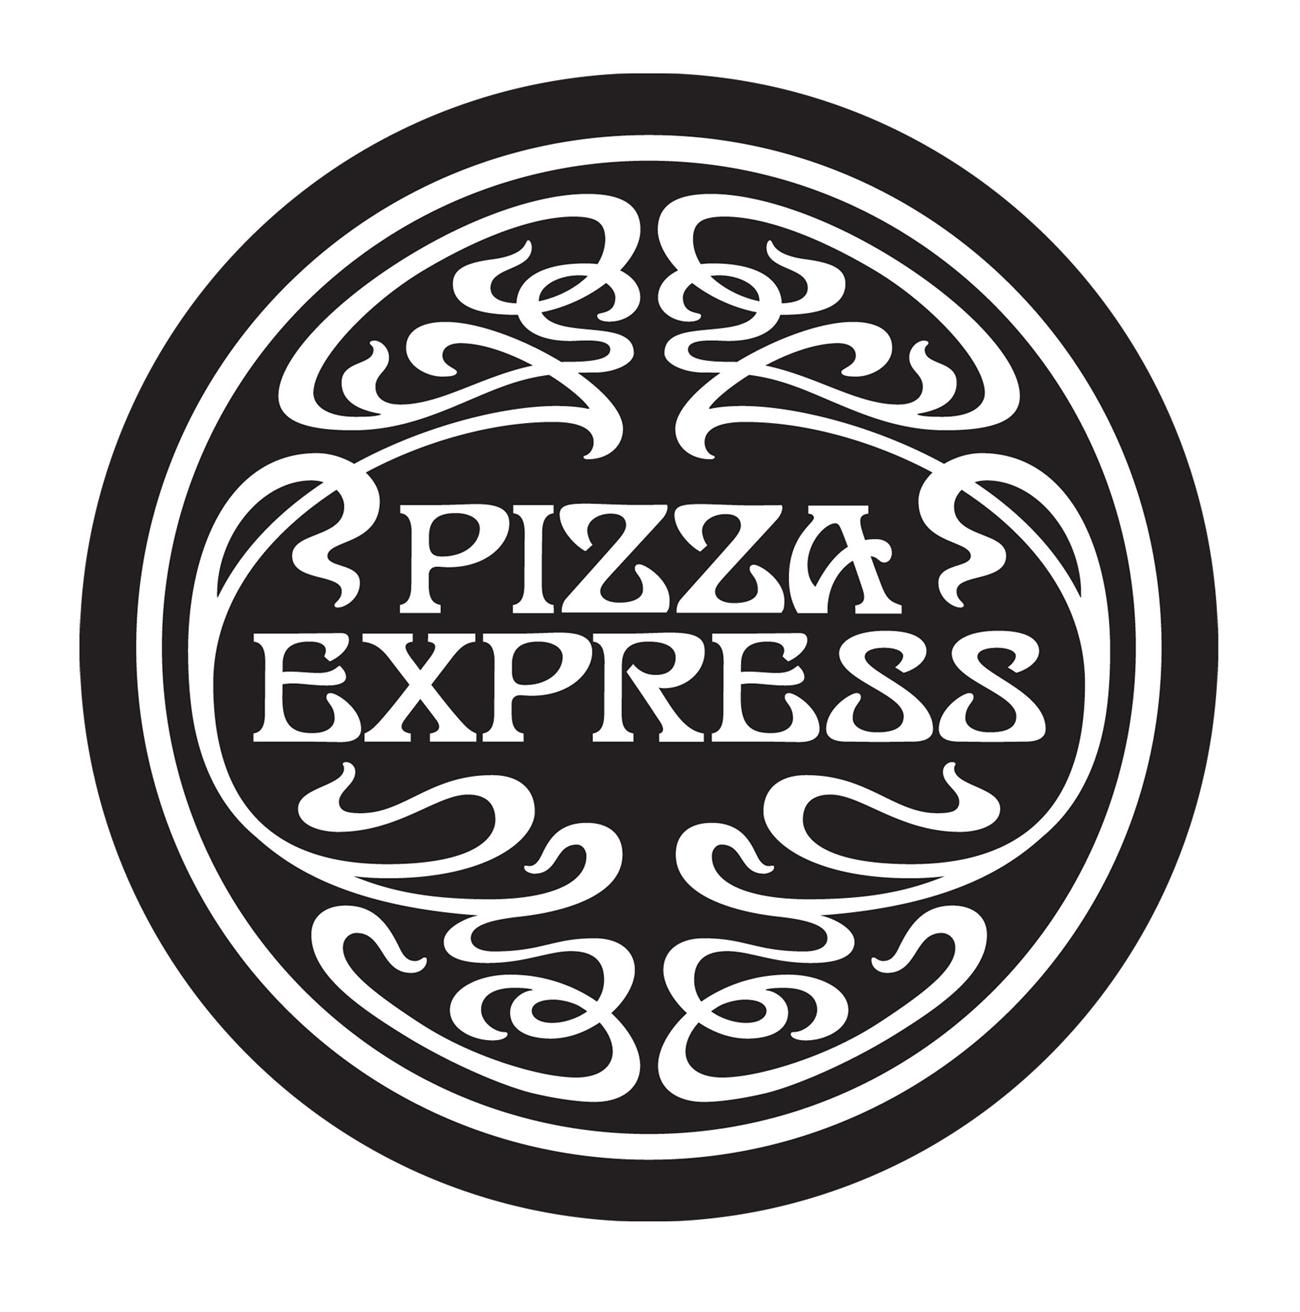 Purley Pizza Express